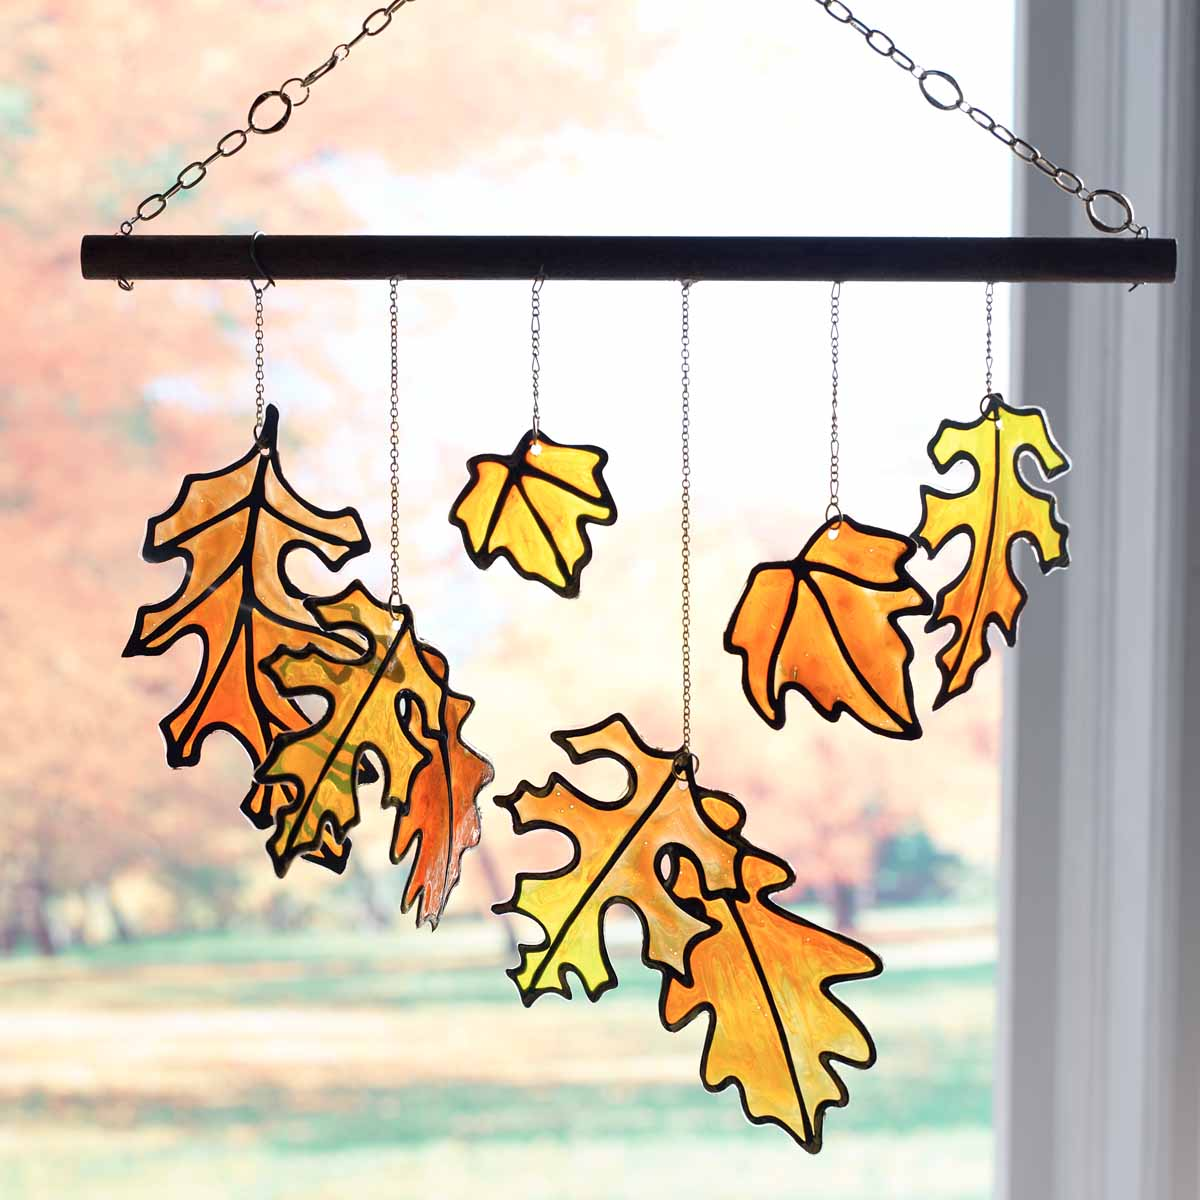 Gallery Glass Fall Leaves Mobile